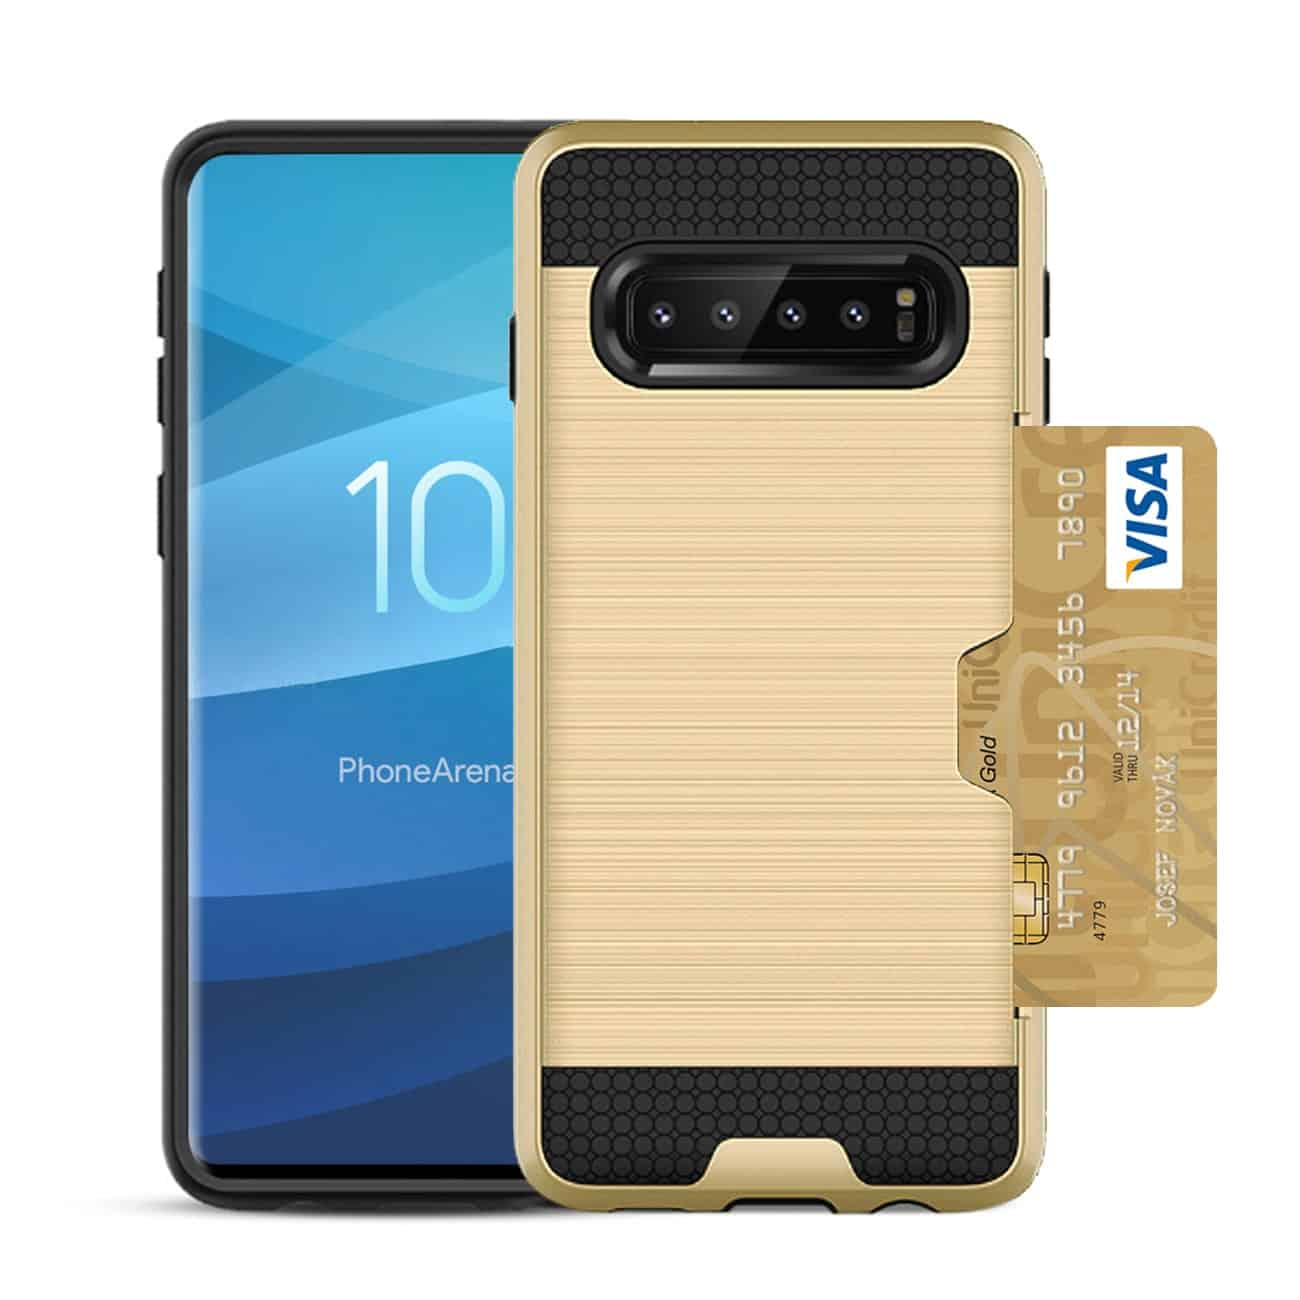 SAMSUNG GALAXY S10 Slim Armor Hybrid Case With Card Holder In Gold